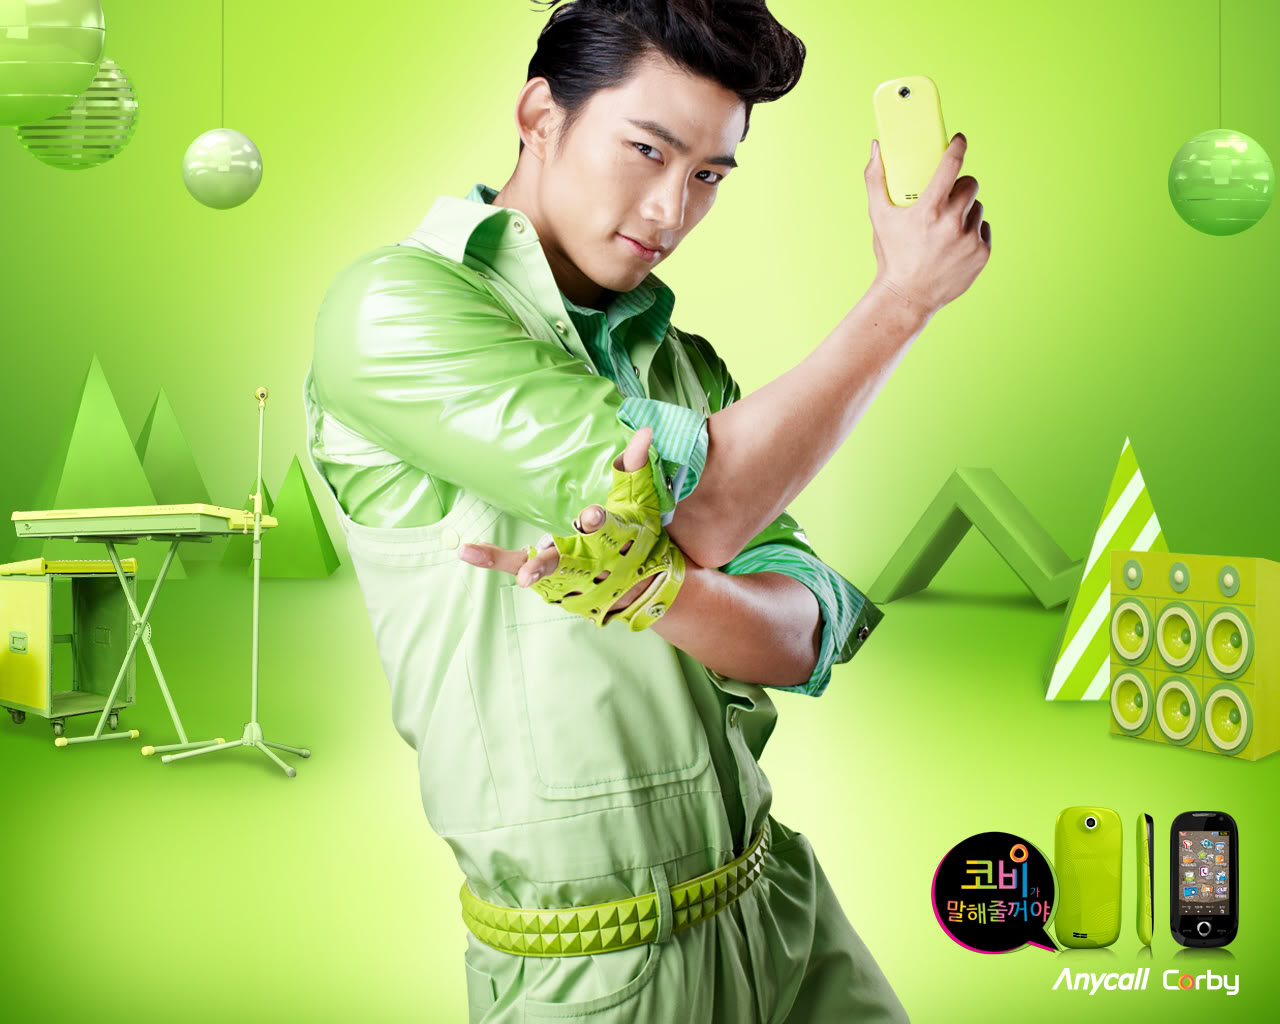 Taecyeon   taecyeon 2pm Wallpaper 34432638 1280x1024